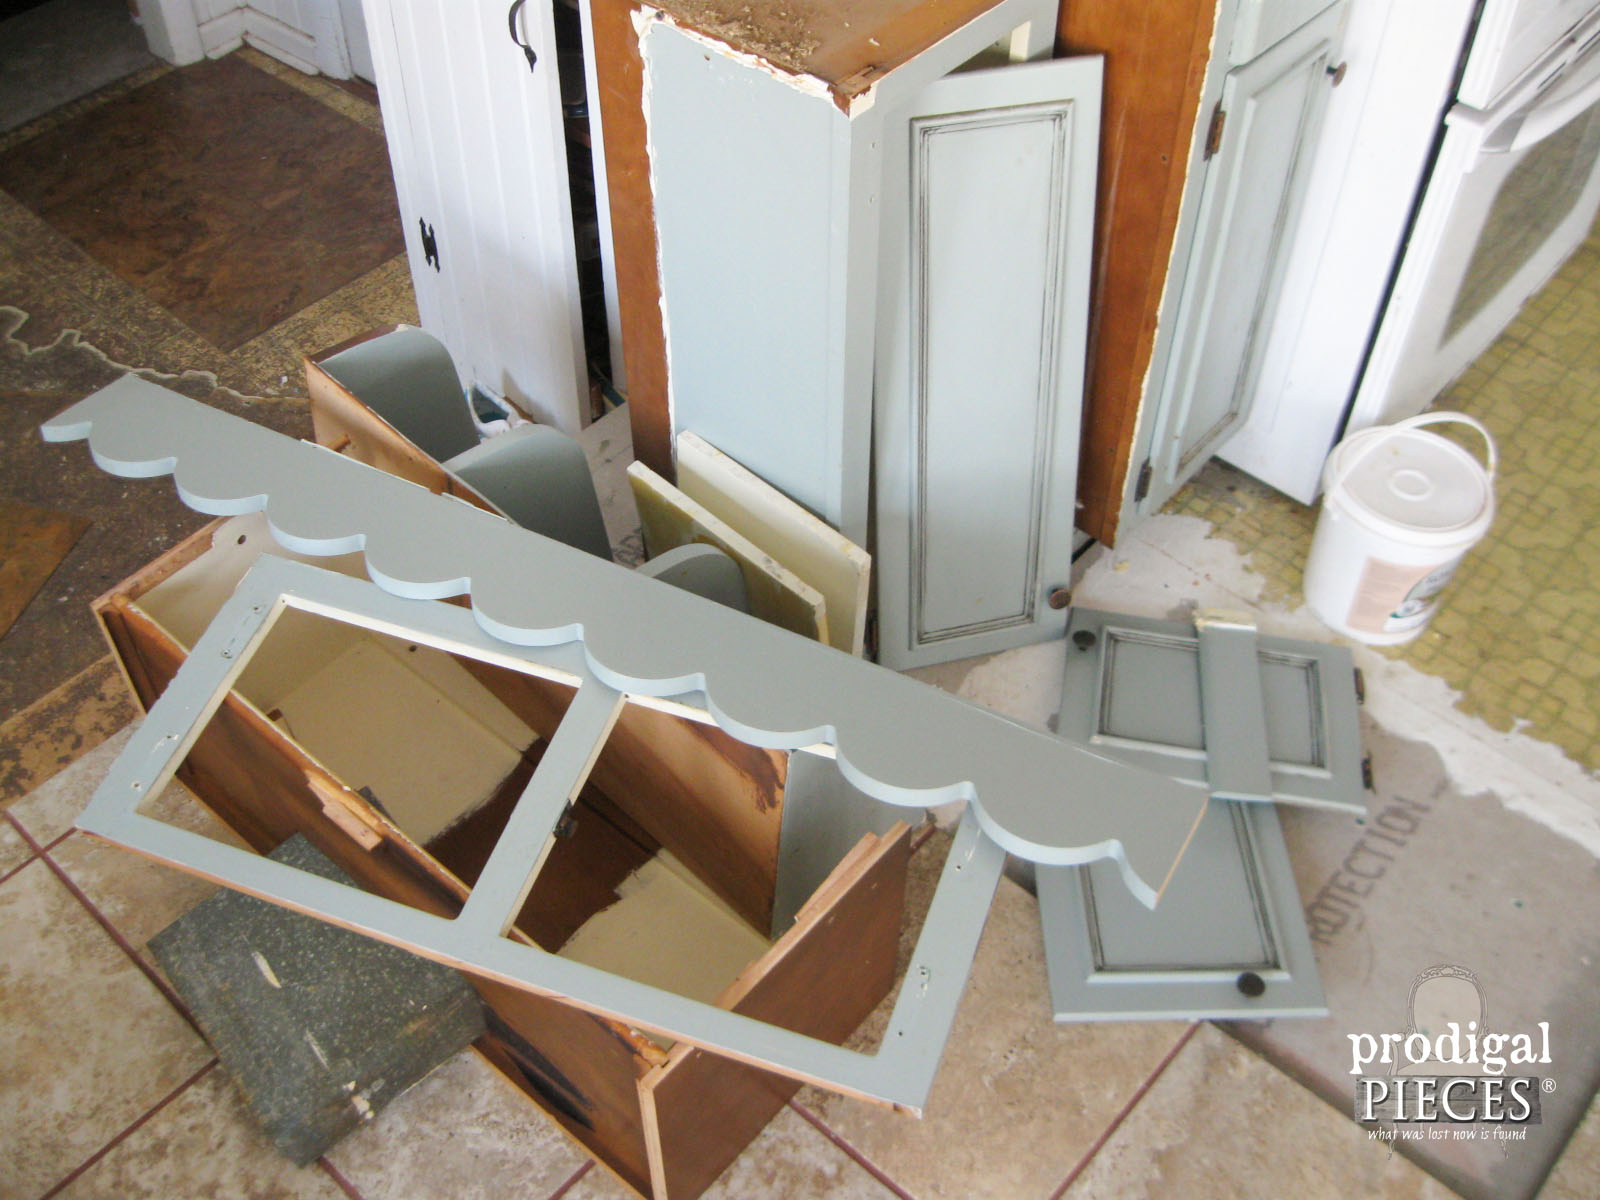 Pile of Discarded Kitchen Cabinets for Repurpose by Prodigal Pieces | www.prodigalpieces.com